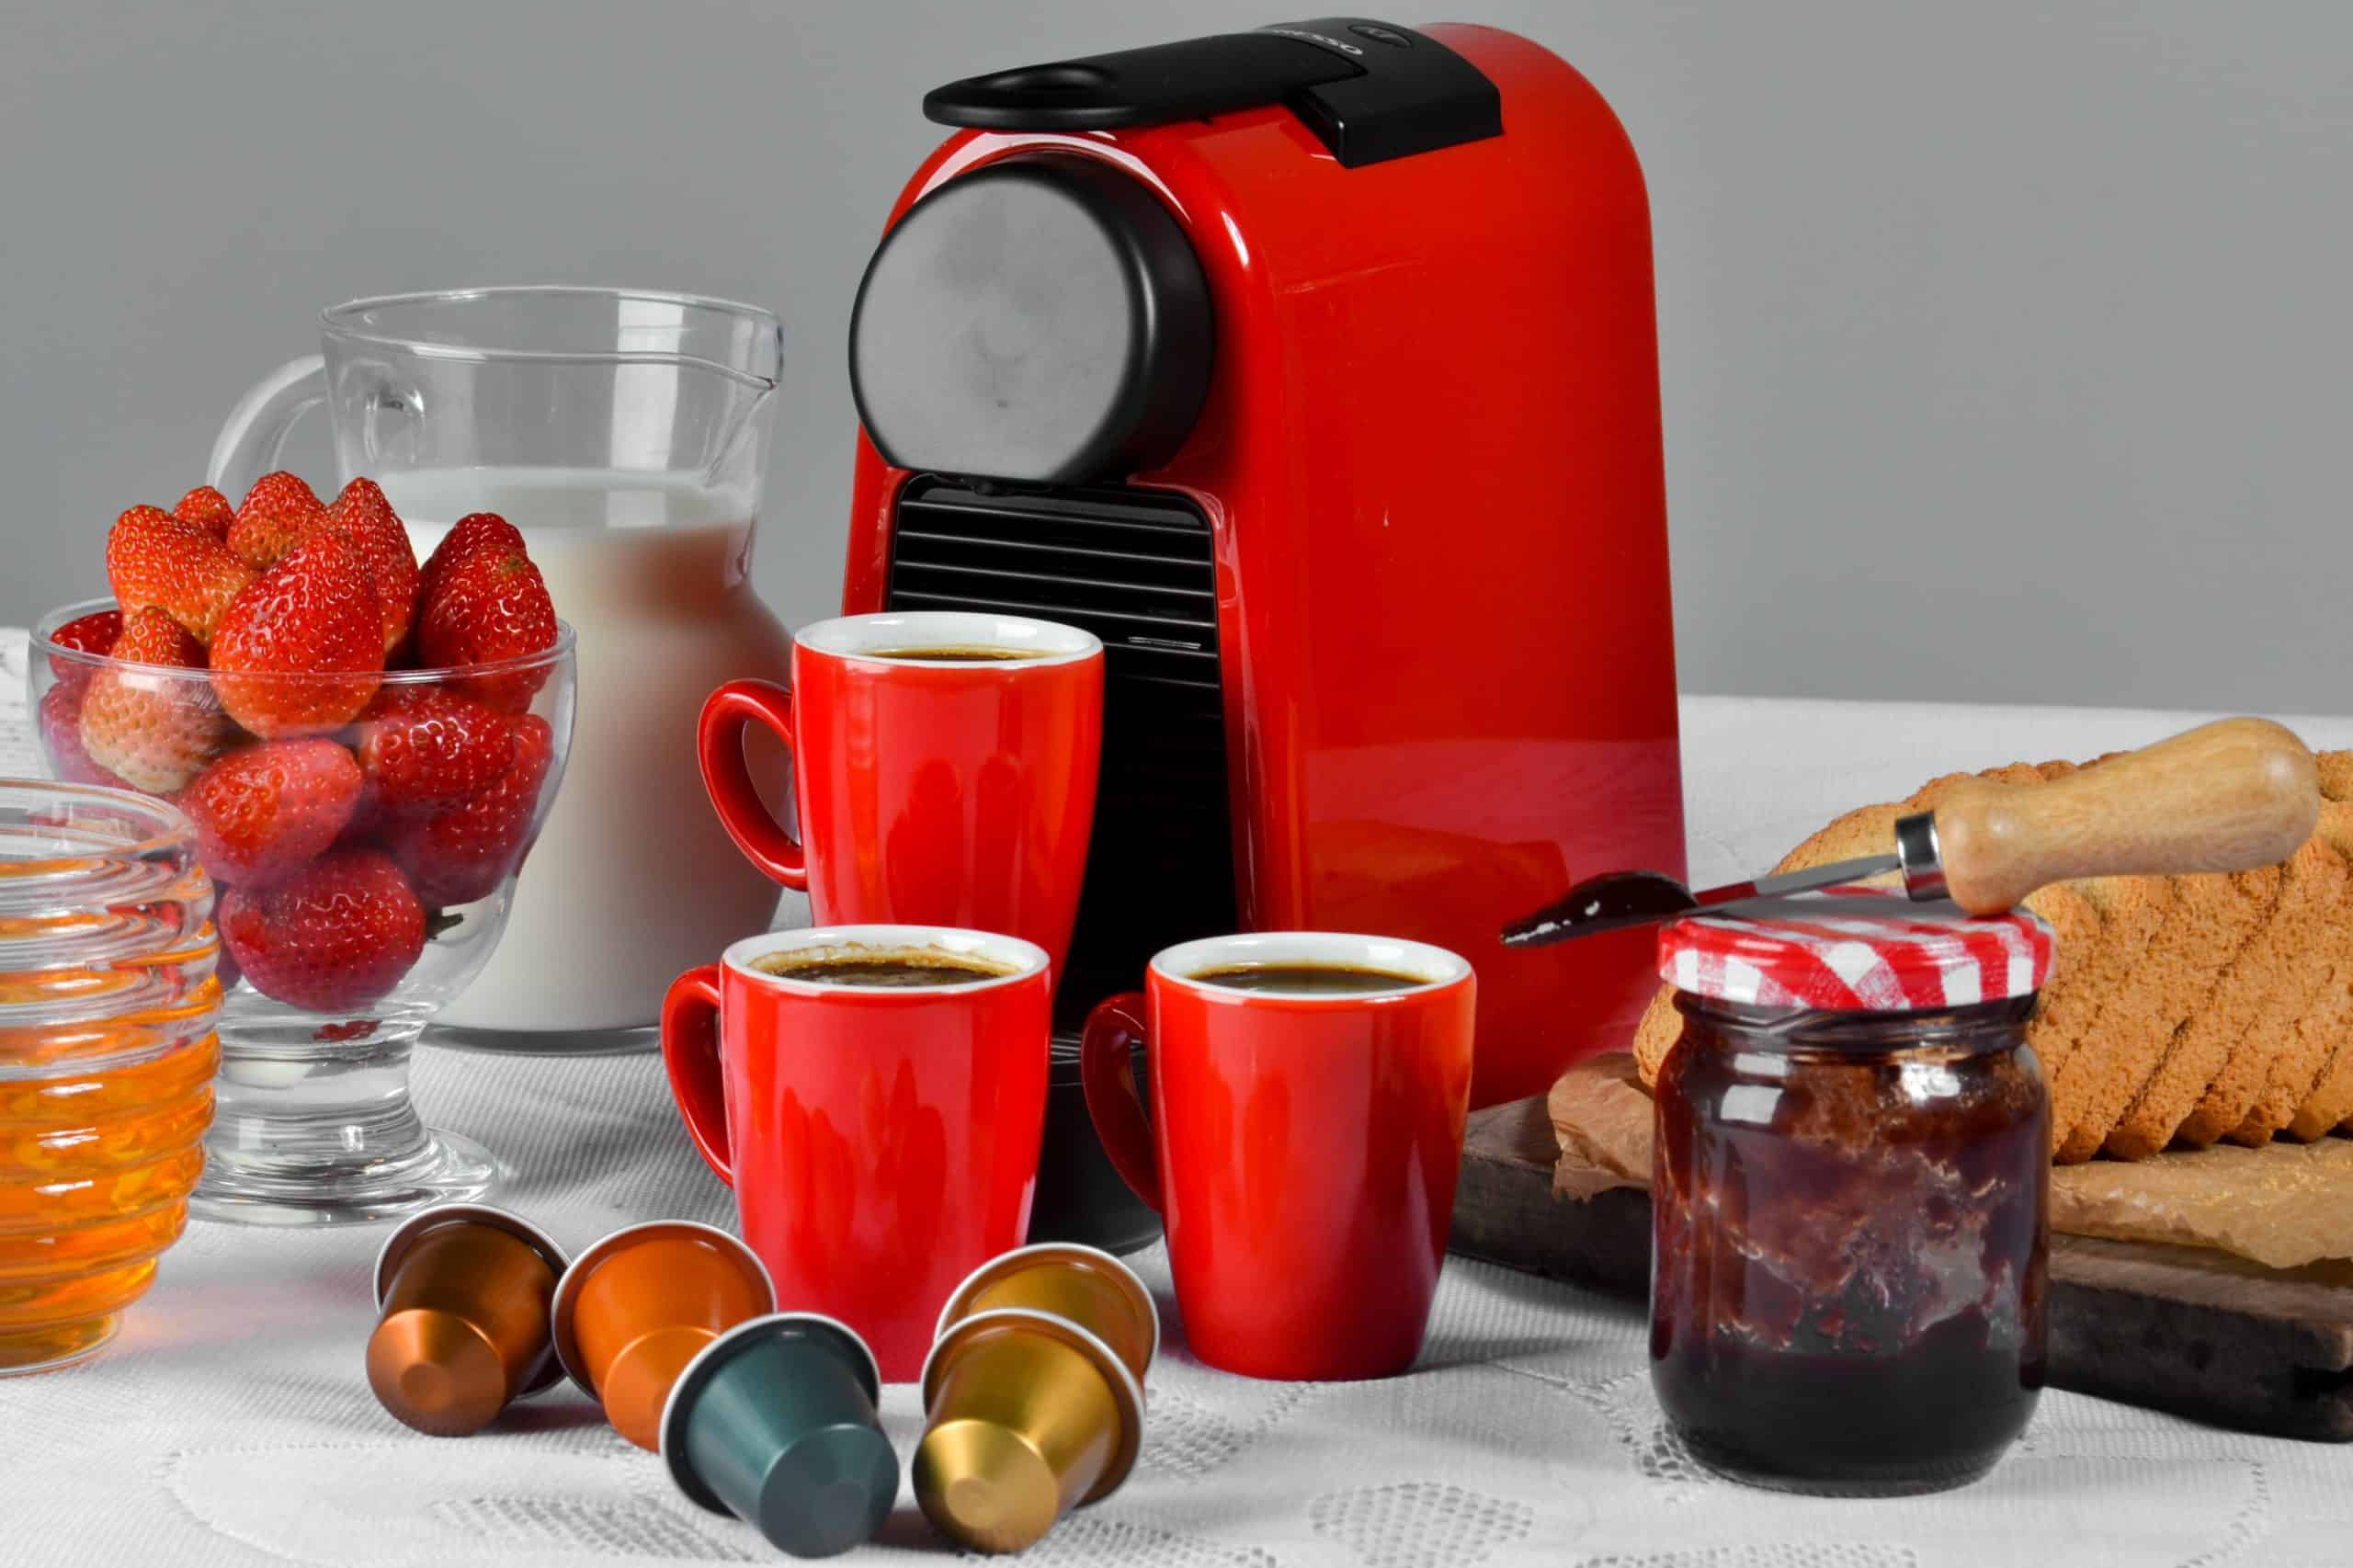 Review Of Top Keurig Coffee Maker For You